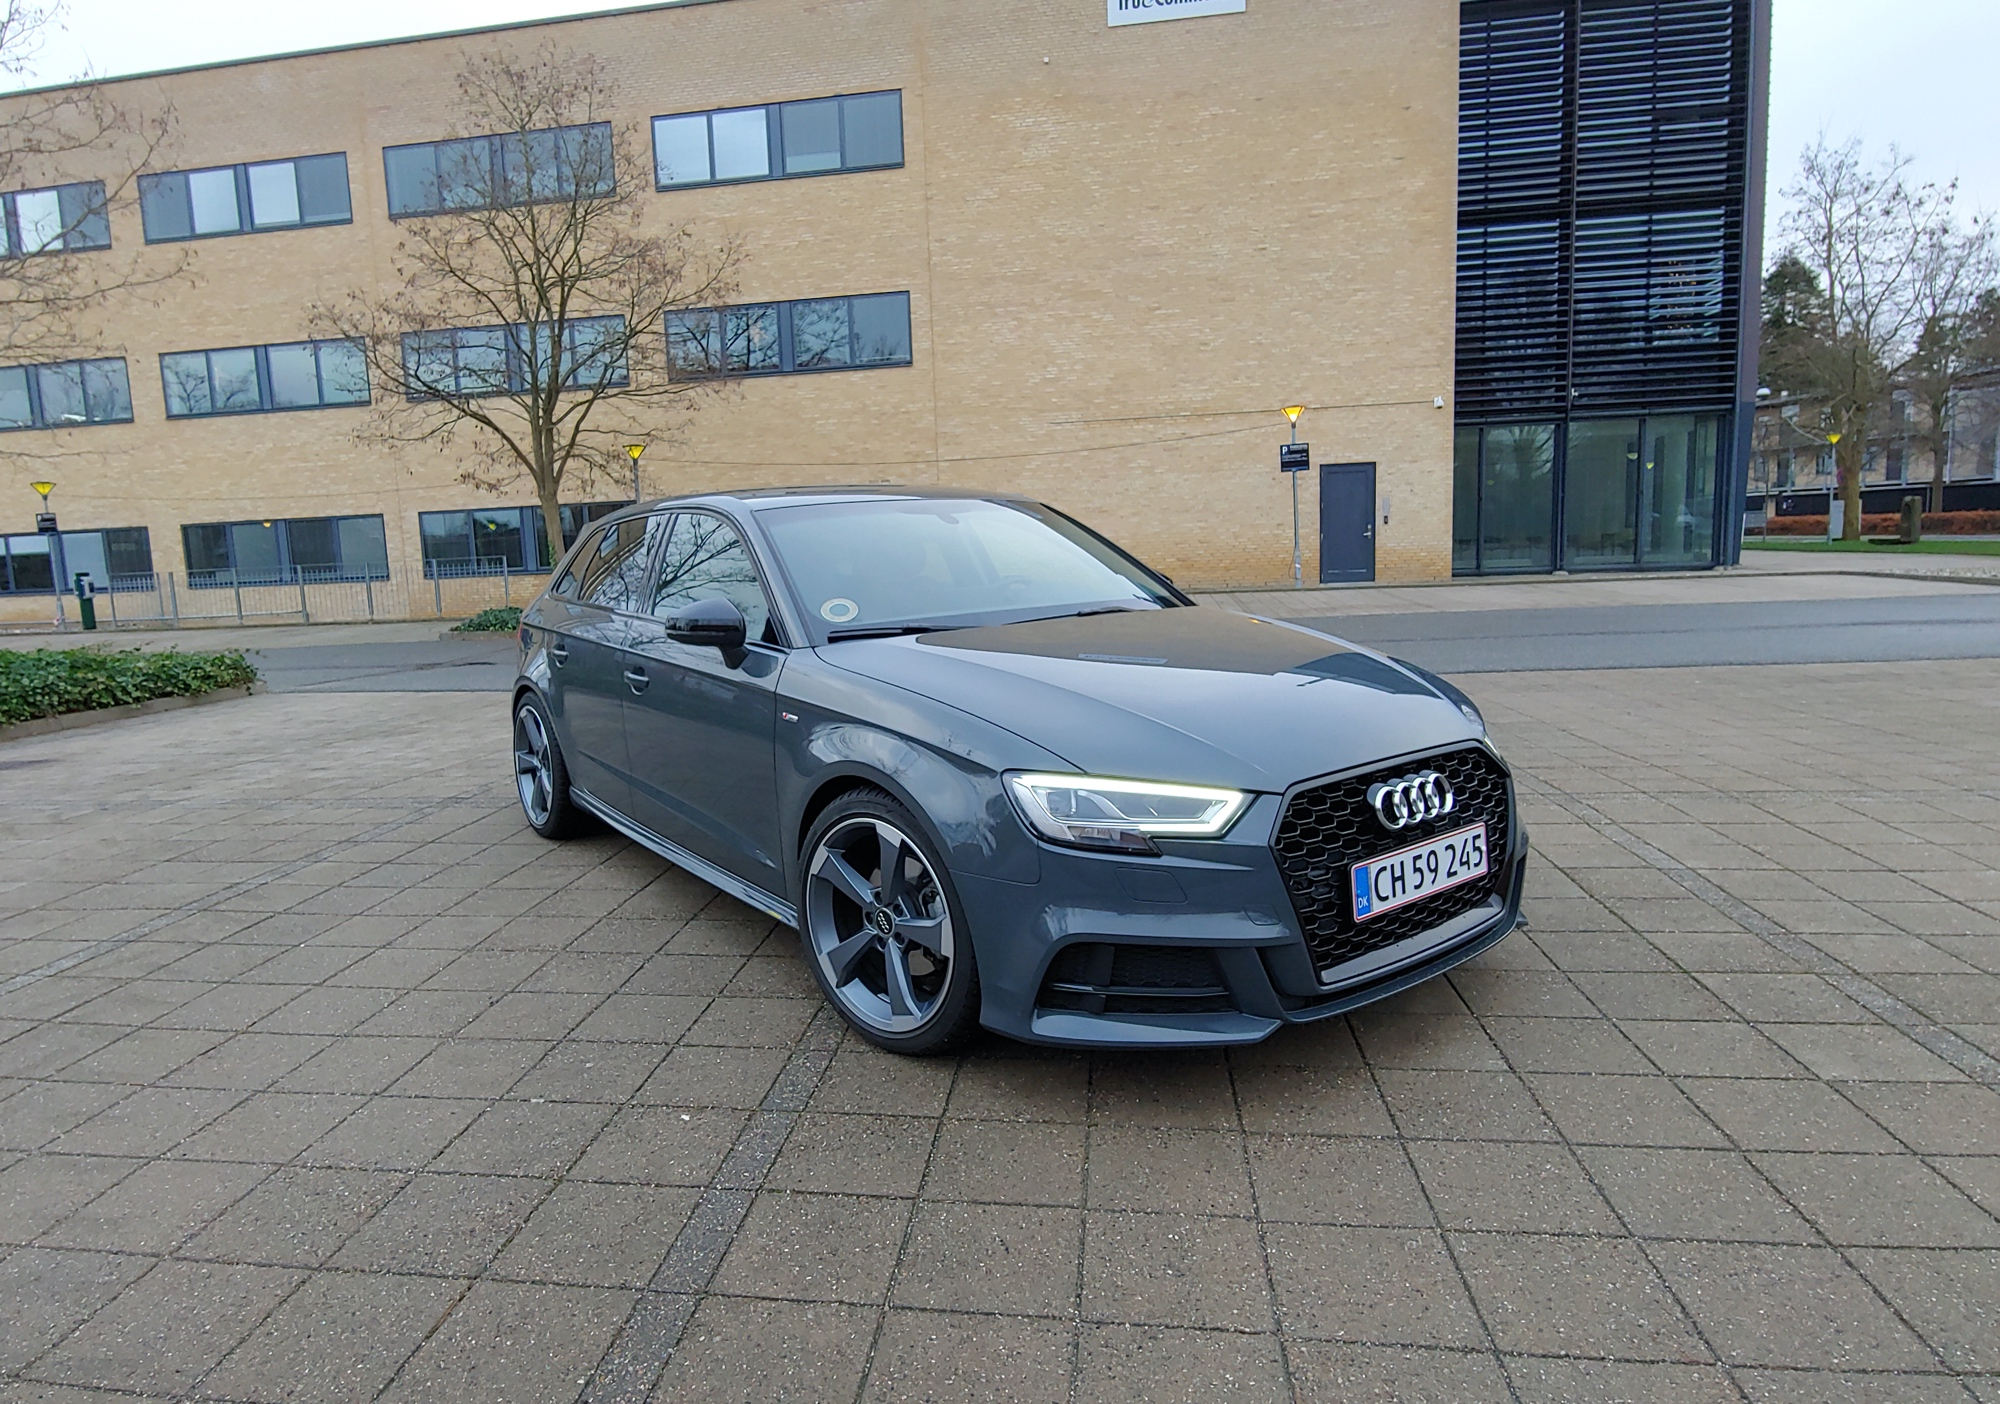 RS3 Grille 4.jpg